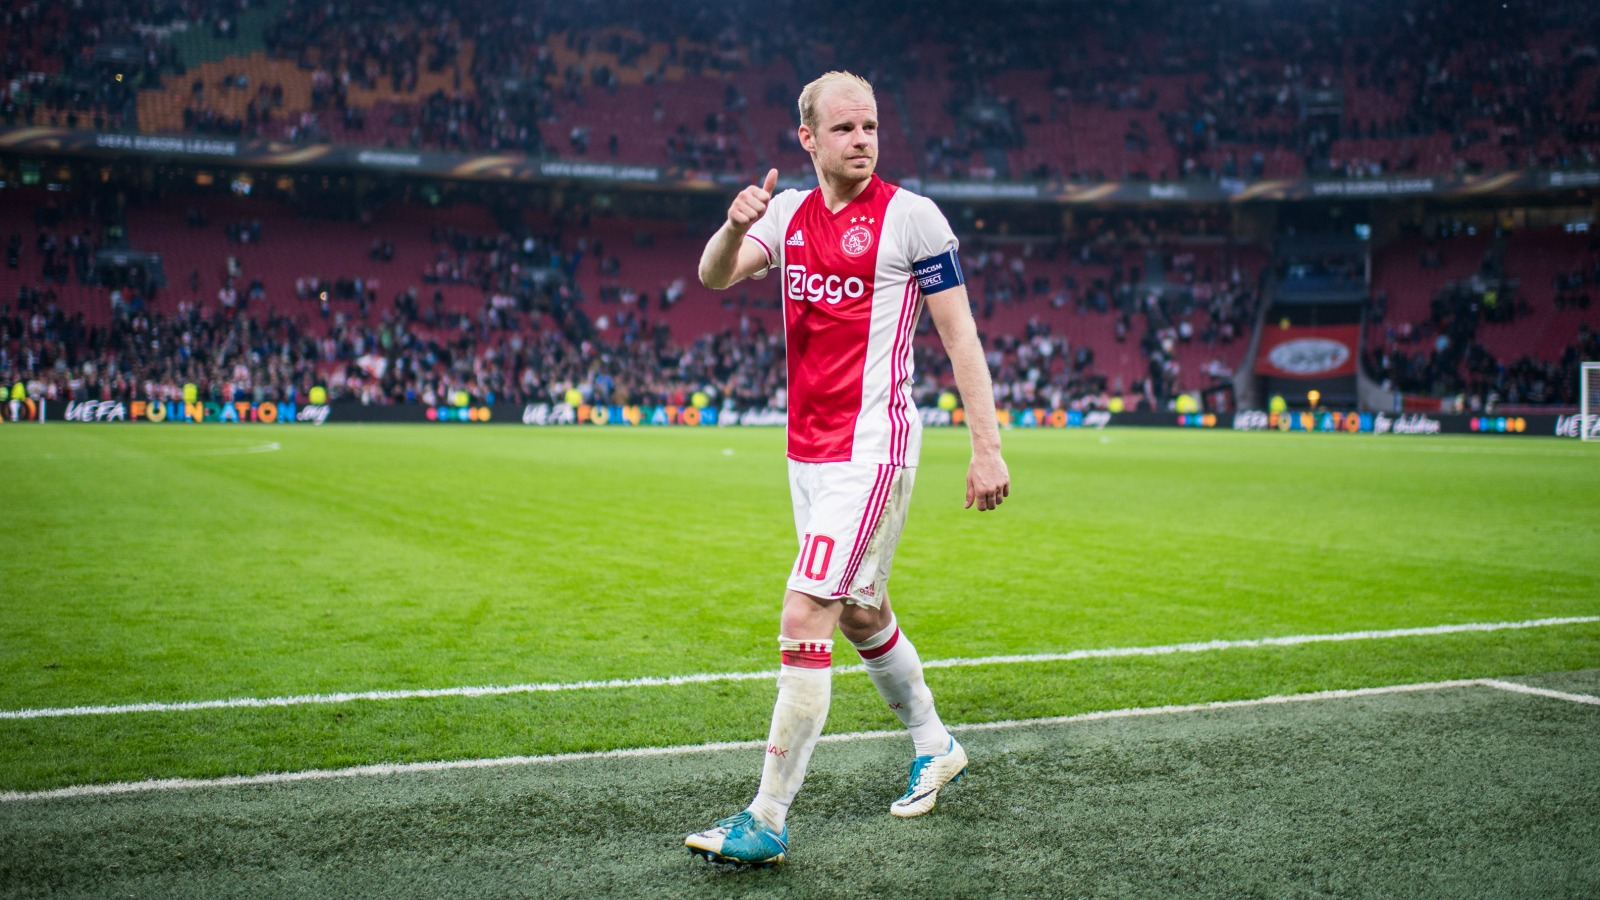 Grading Davy Klaassen's transfer to Everton from Ajax